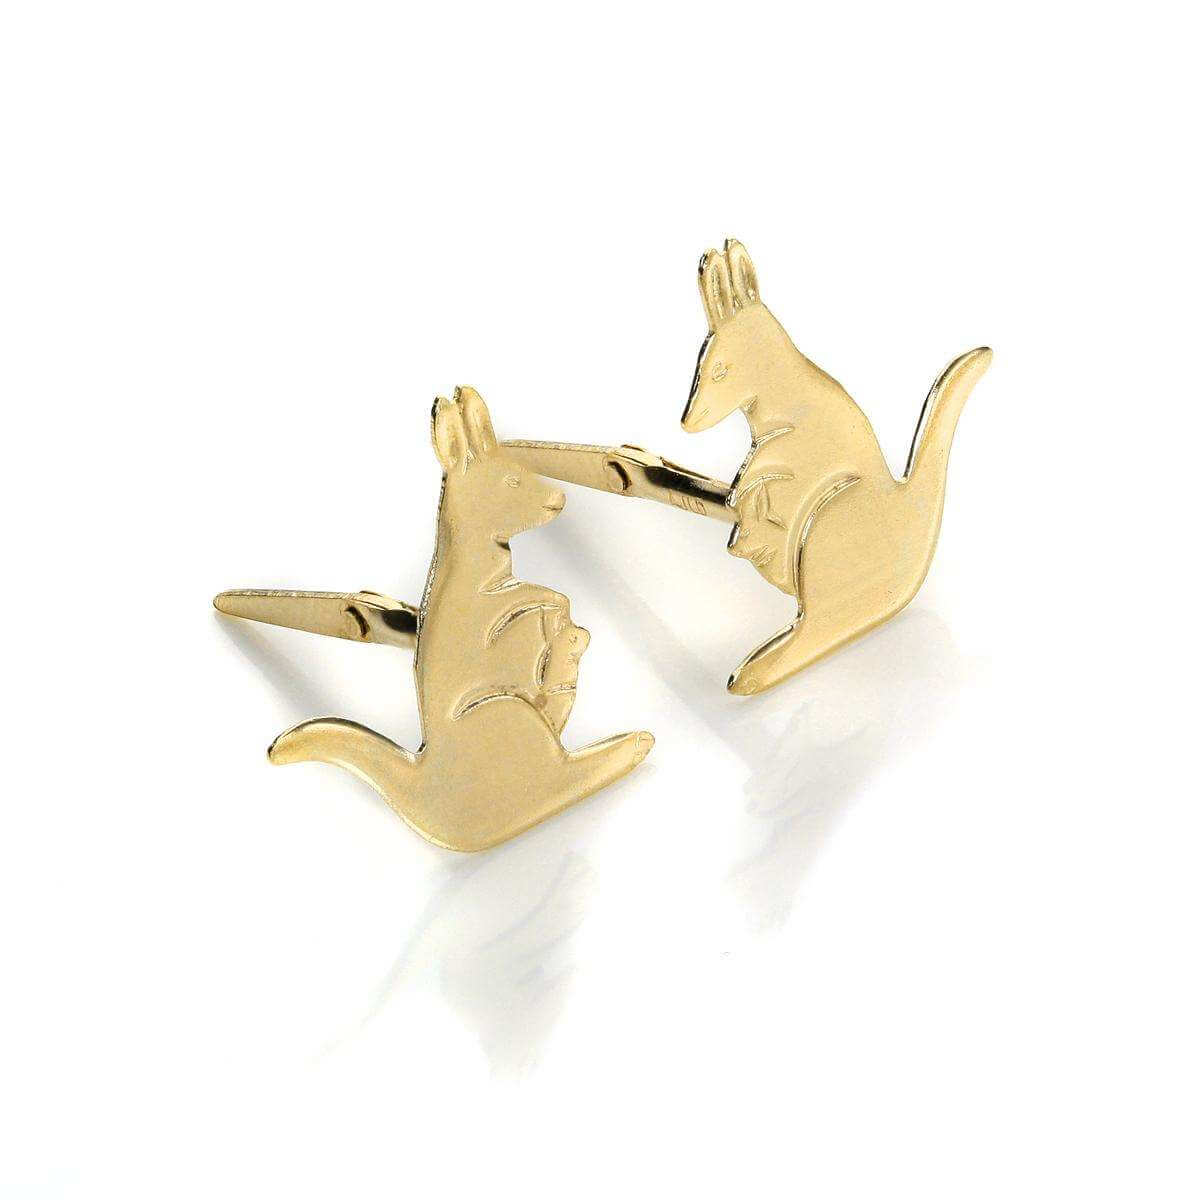 Andralok 9ct Yellow Gold Kangaroo Stud Earrings